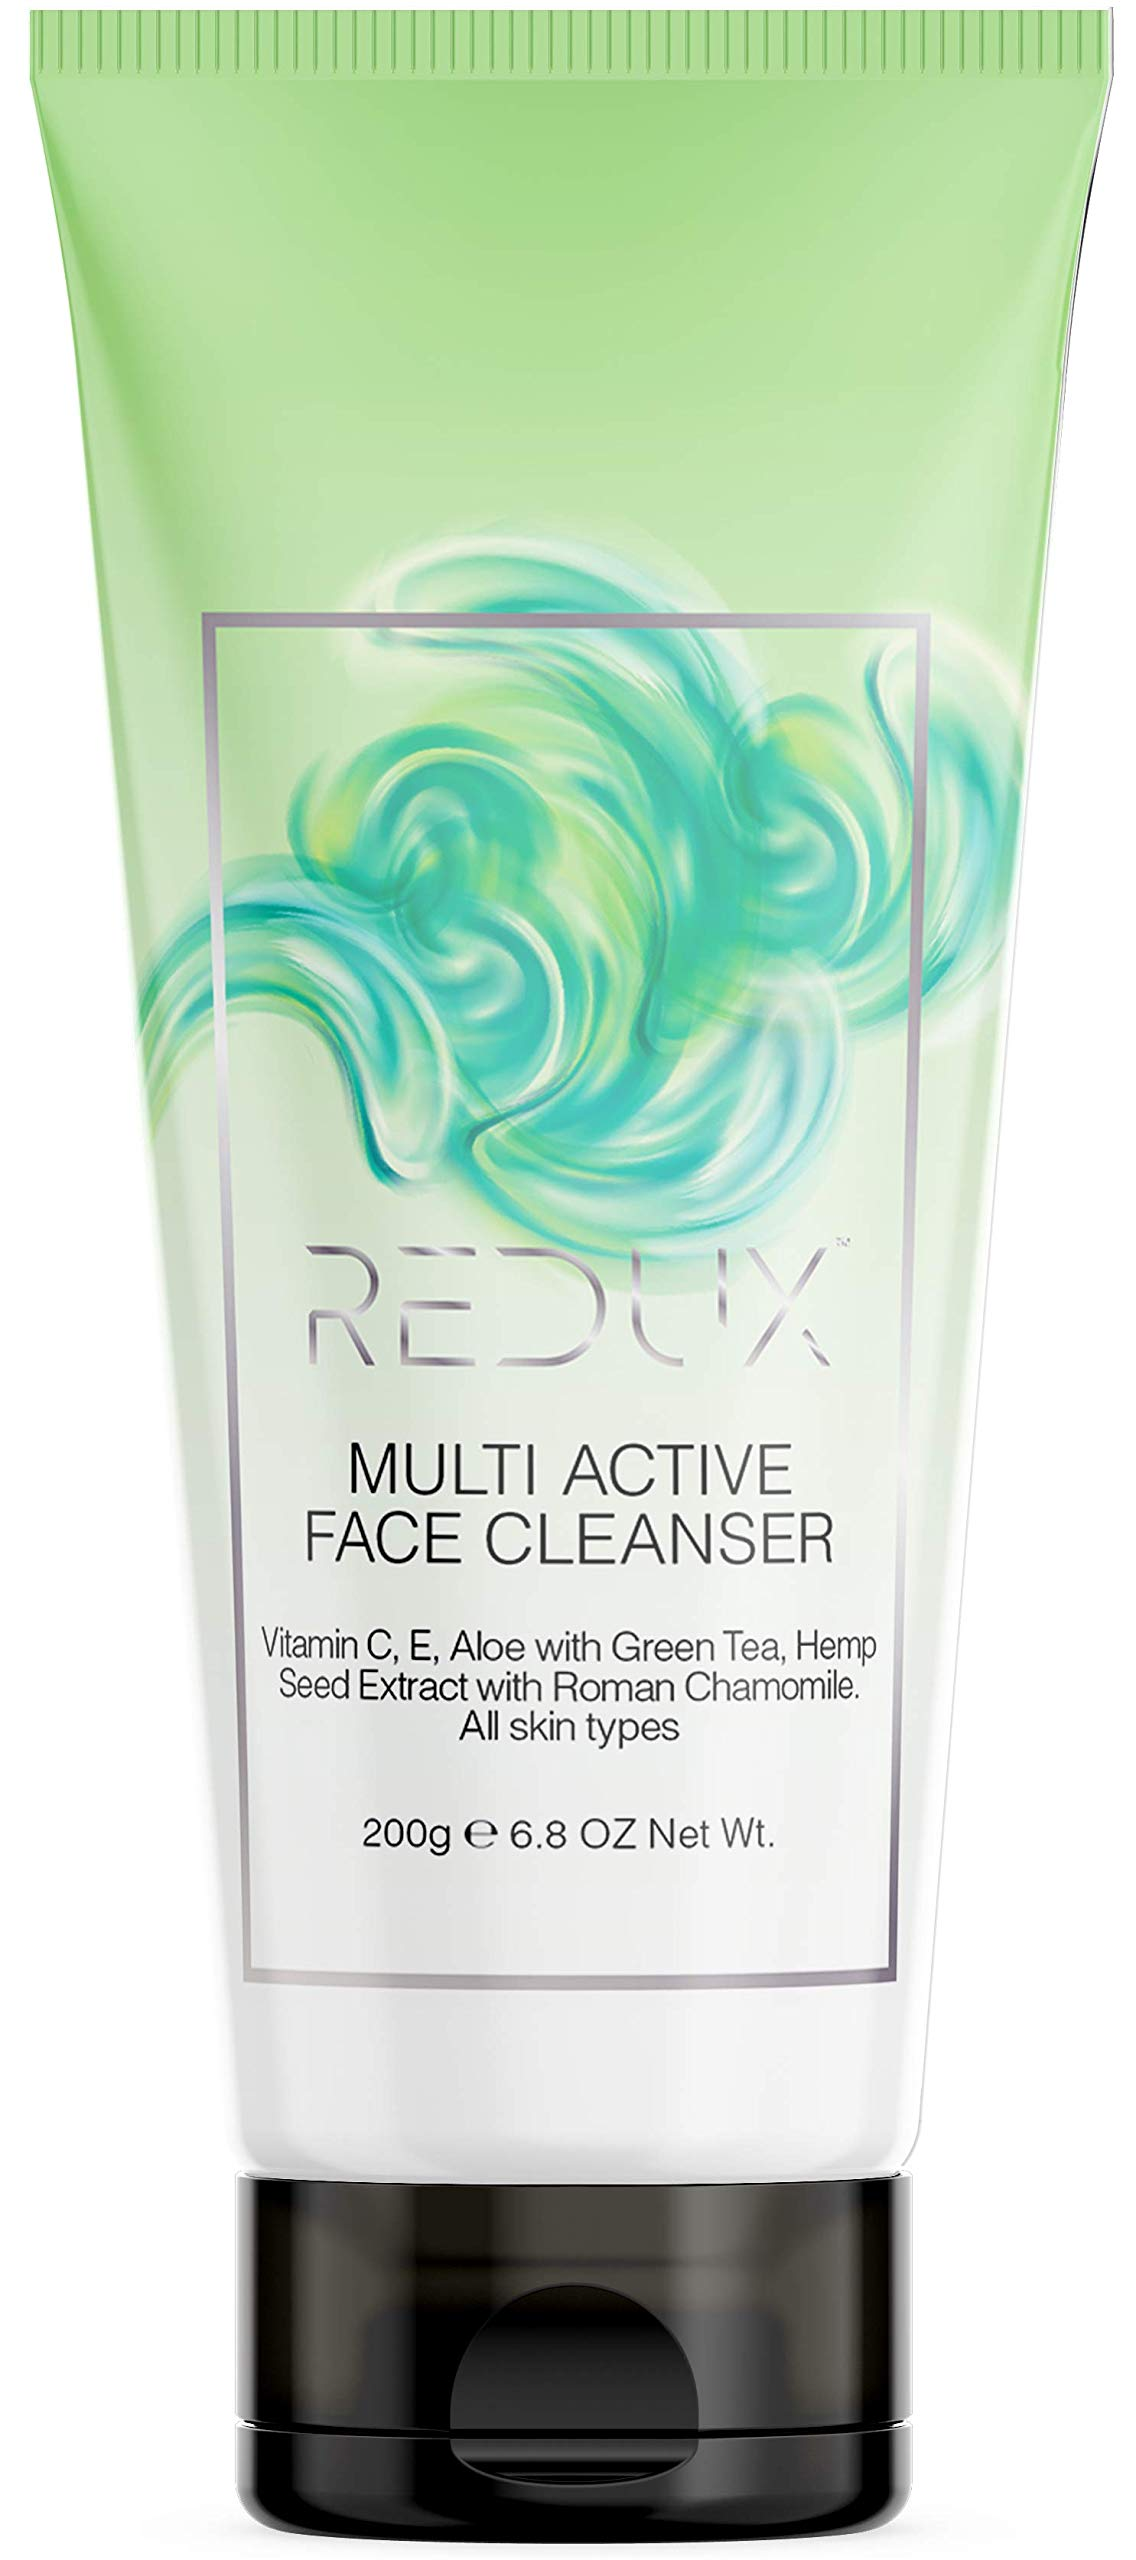 Redux Face Cleanser with Vitamin C, E, Aloe, Green Tea, Hemp Seed Extract & Roman Chamomile - Clear Pores on Oily, Dry & Sensitive Skin with Organic & Natural Ingredients - Sensitive Skin Safe 6.7 oz